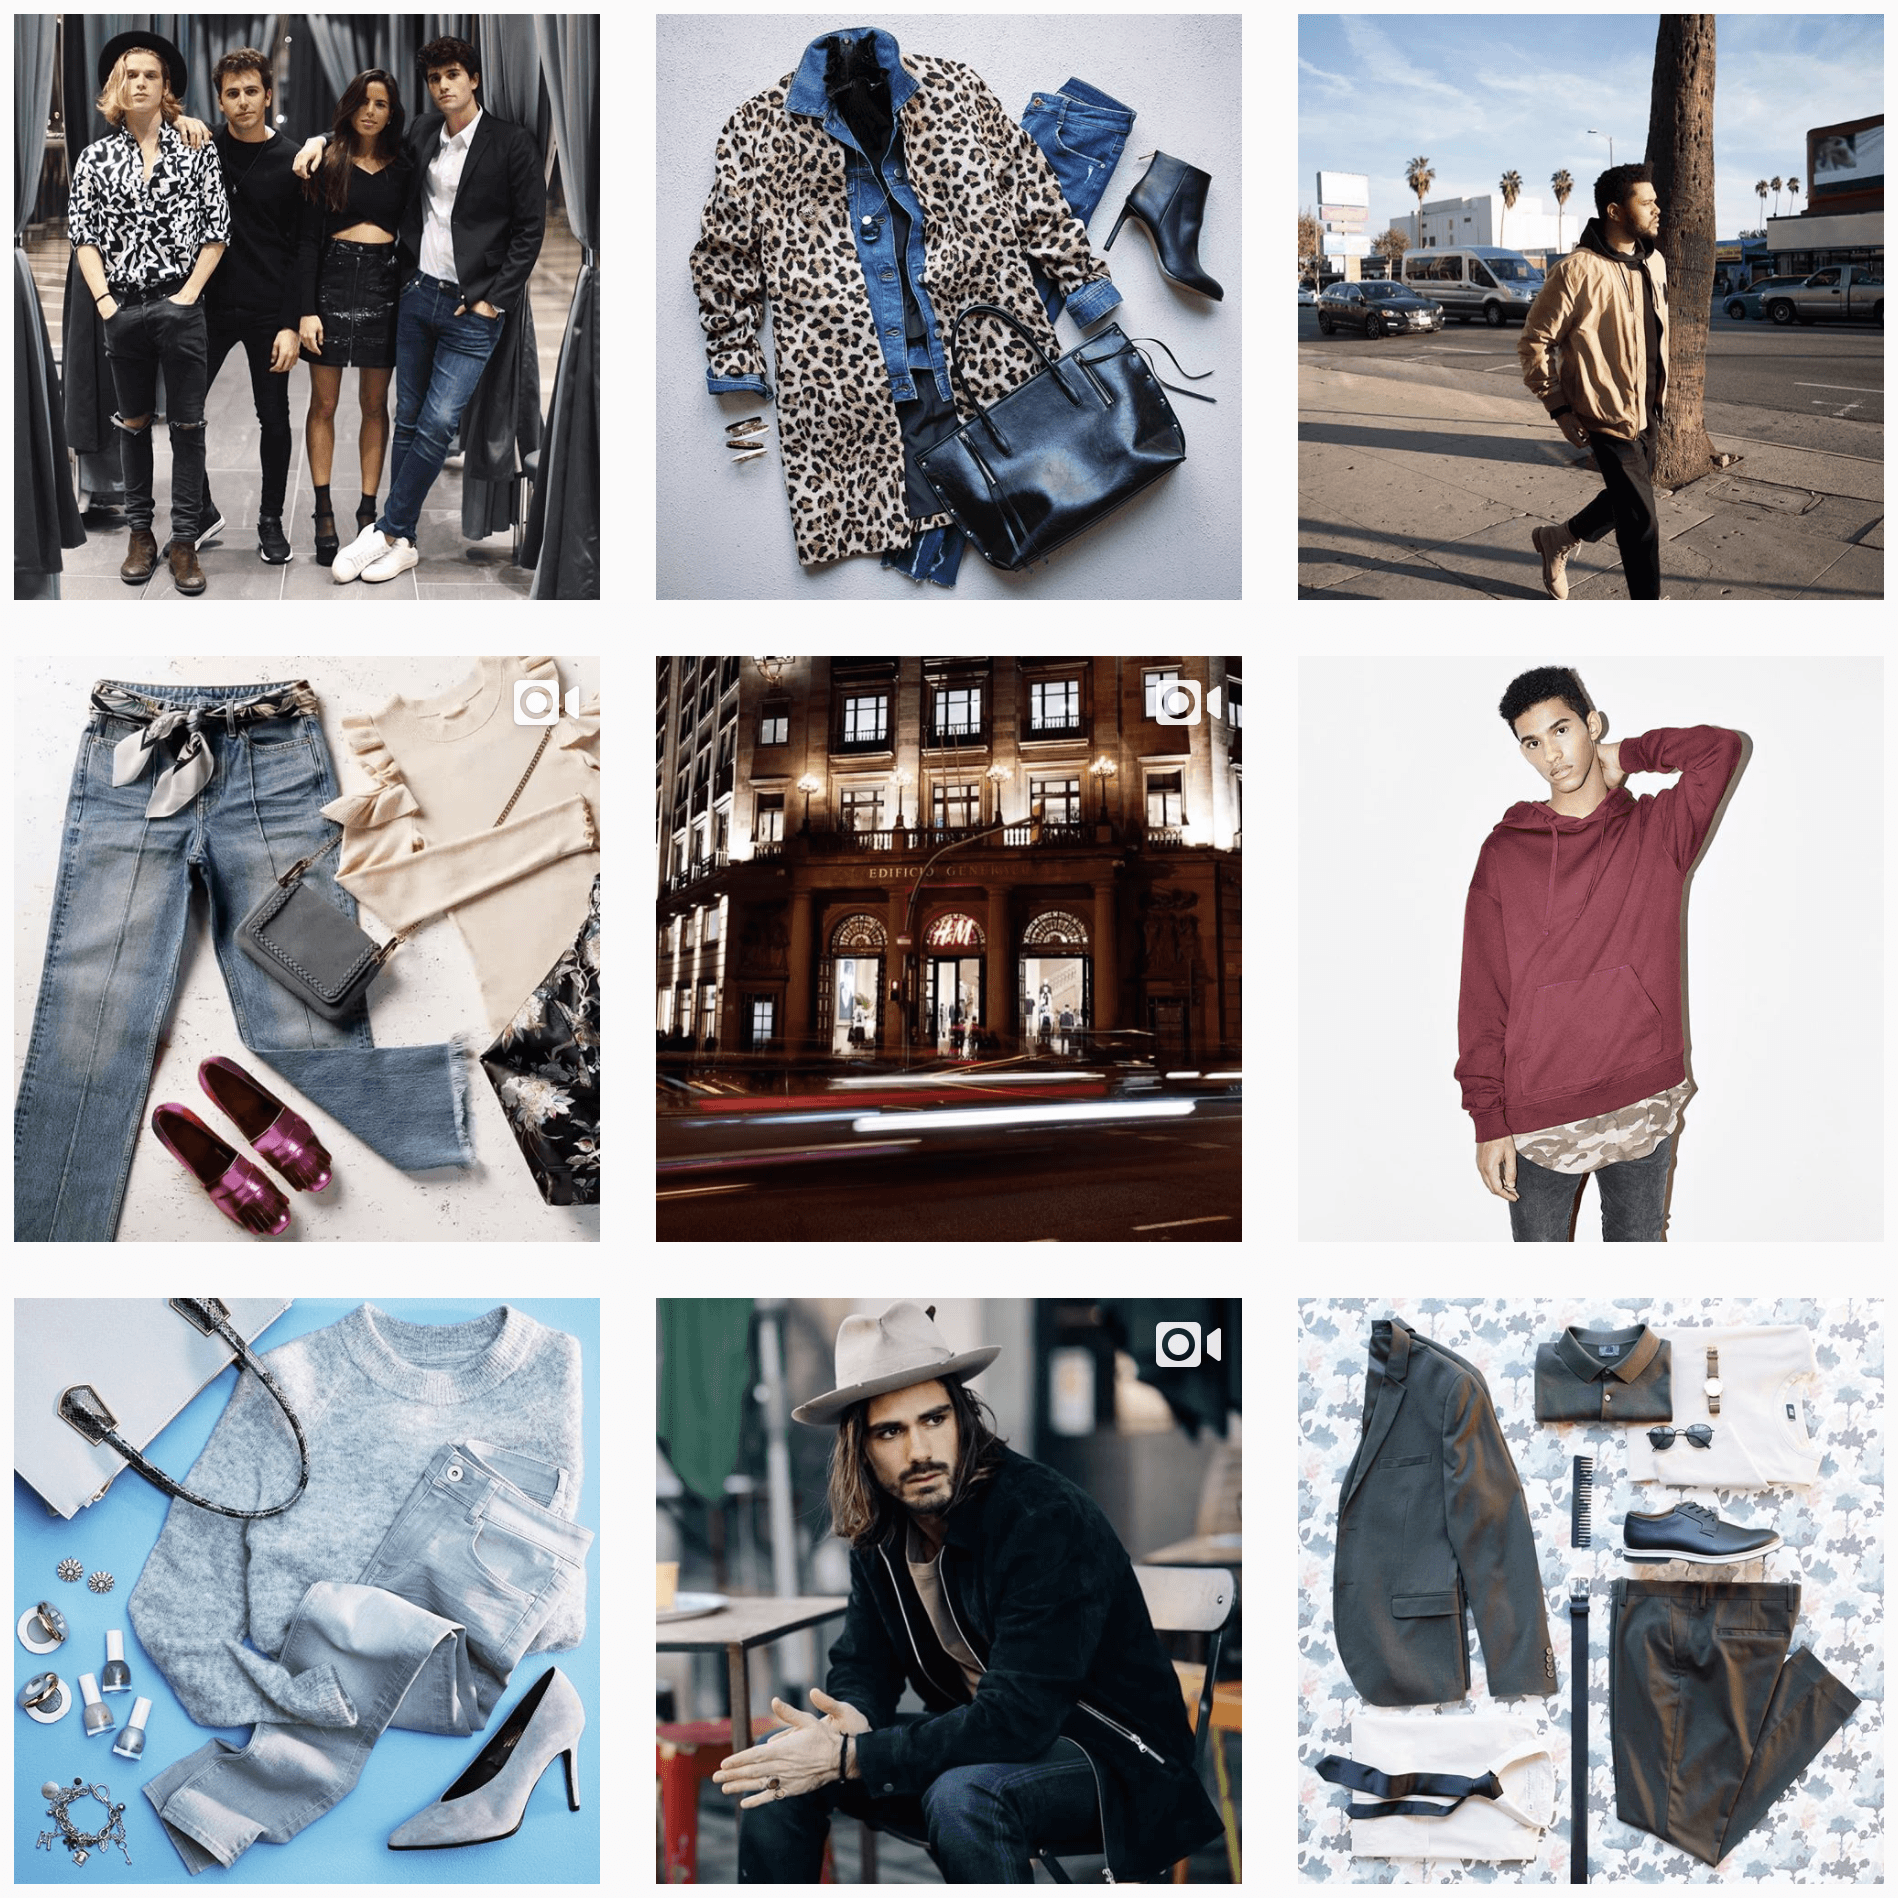 H&M Instagram feed example